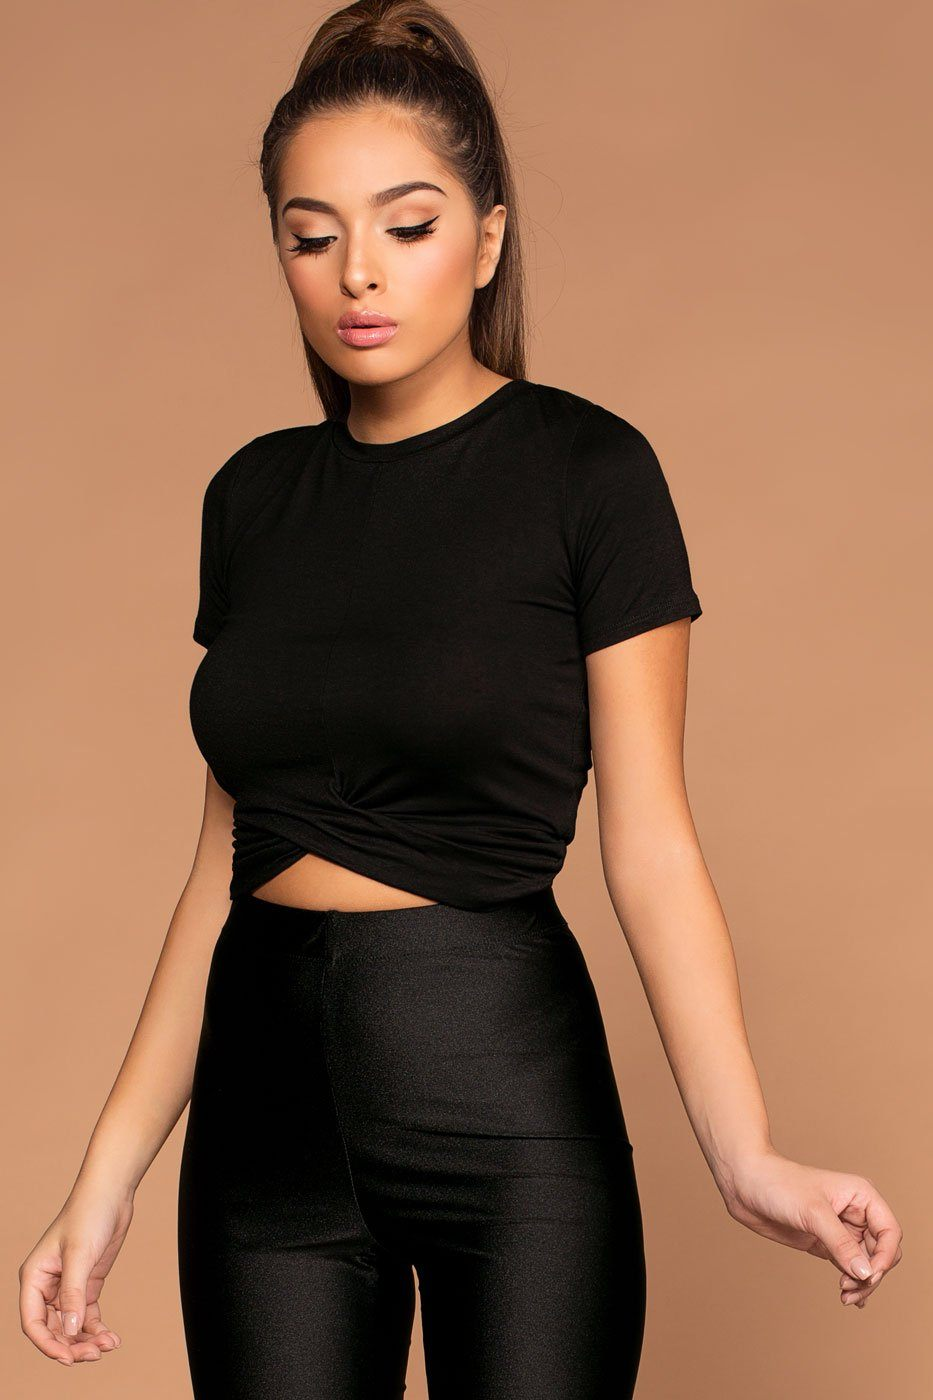 Brinley Black Twist Crop Top | Shop Priceless